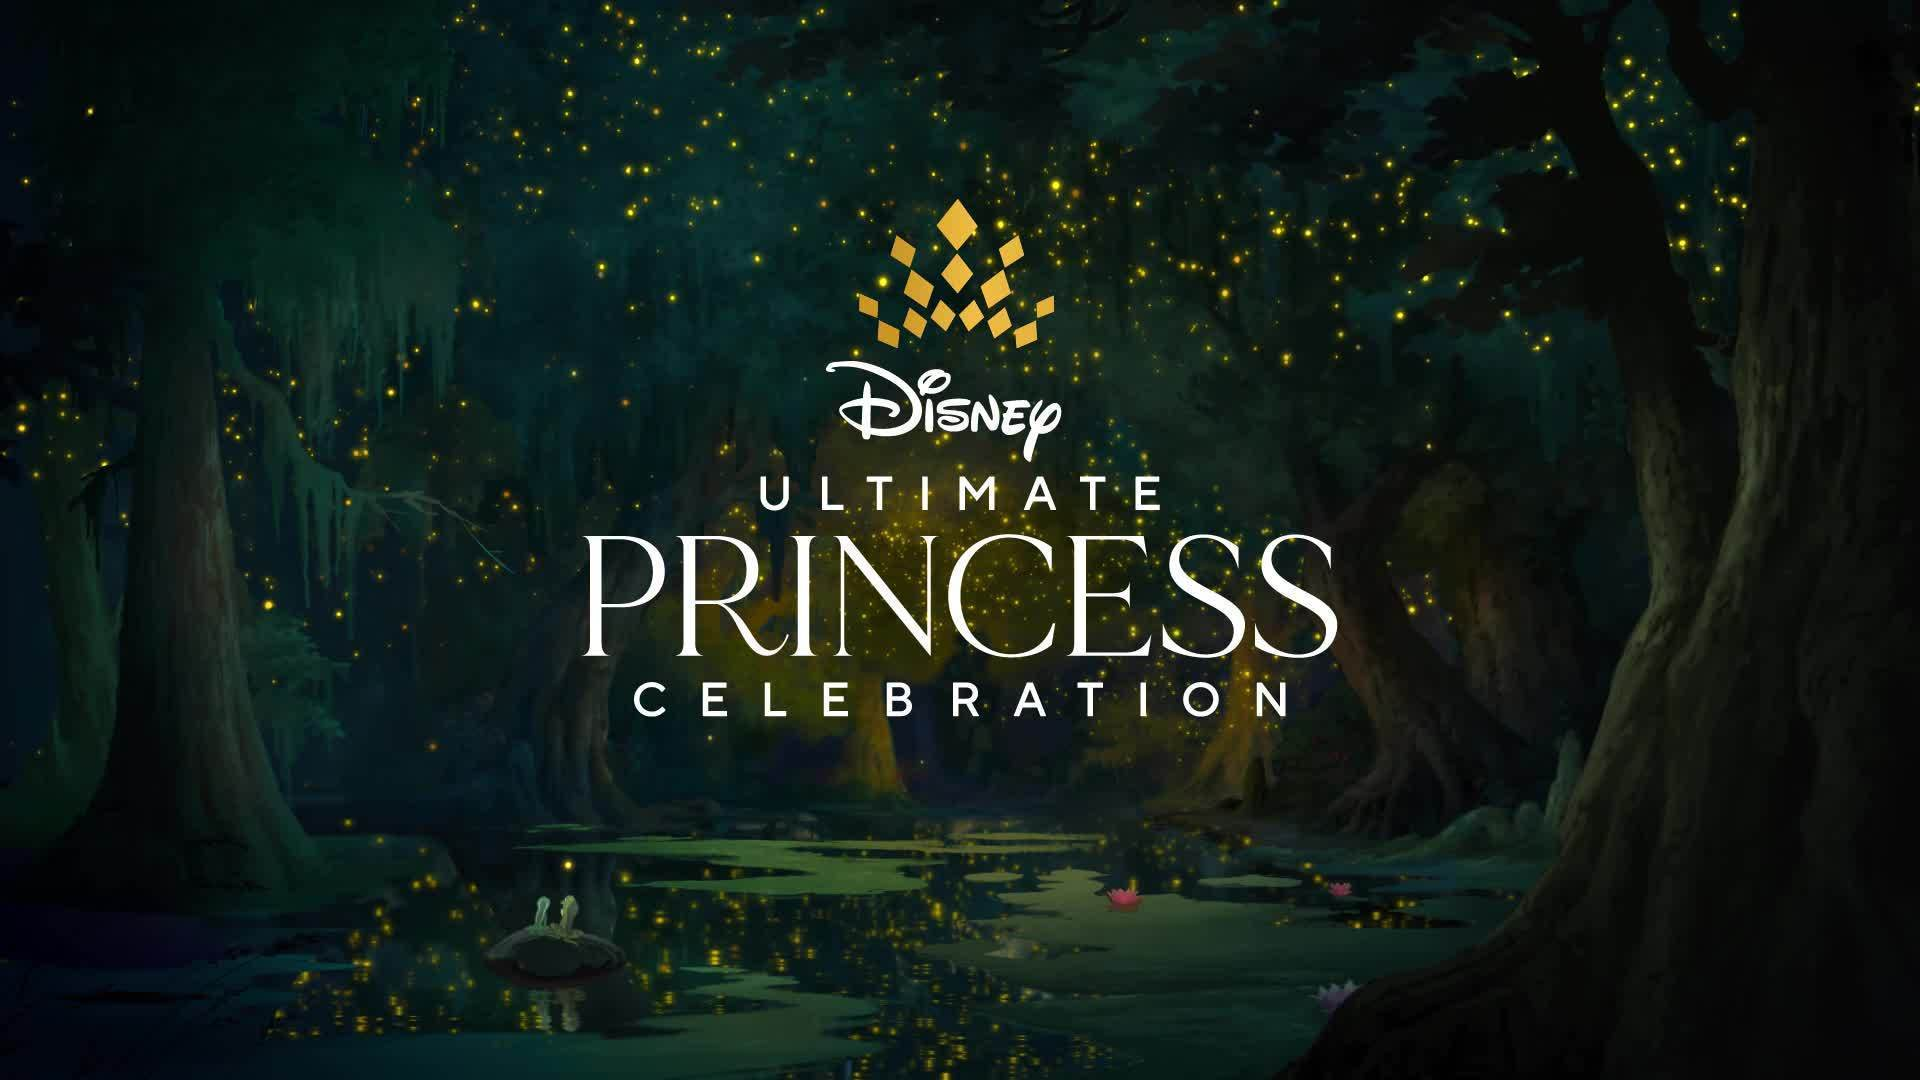 Celebrate Courage and Kindness During Disney's Ultimate Princess Celebration